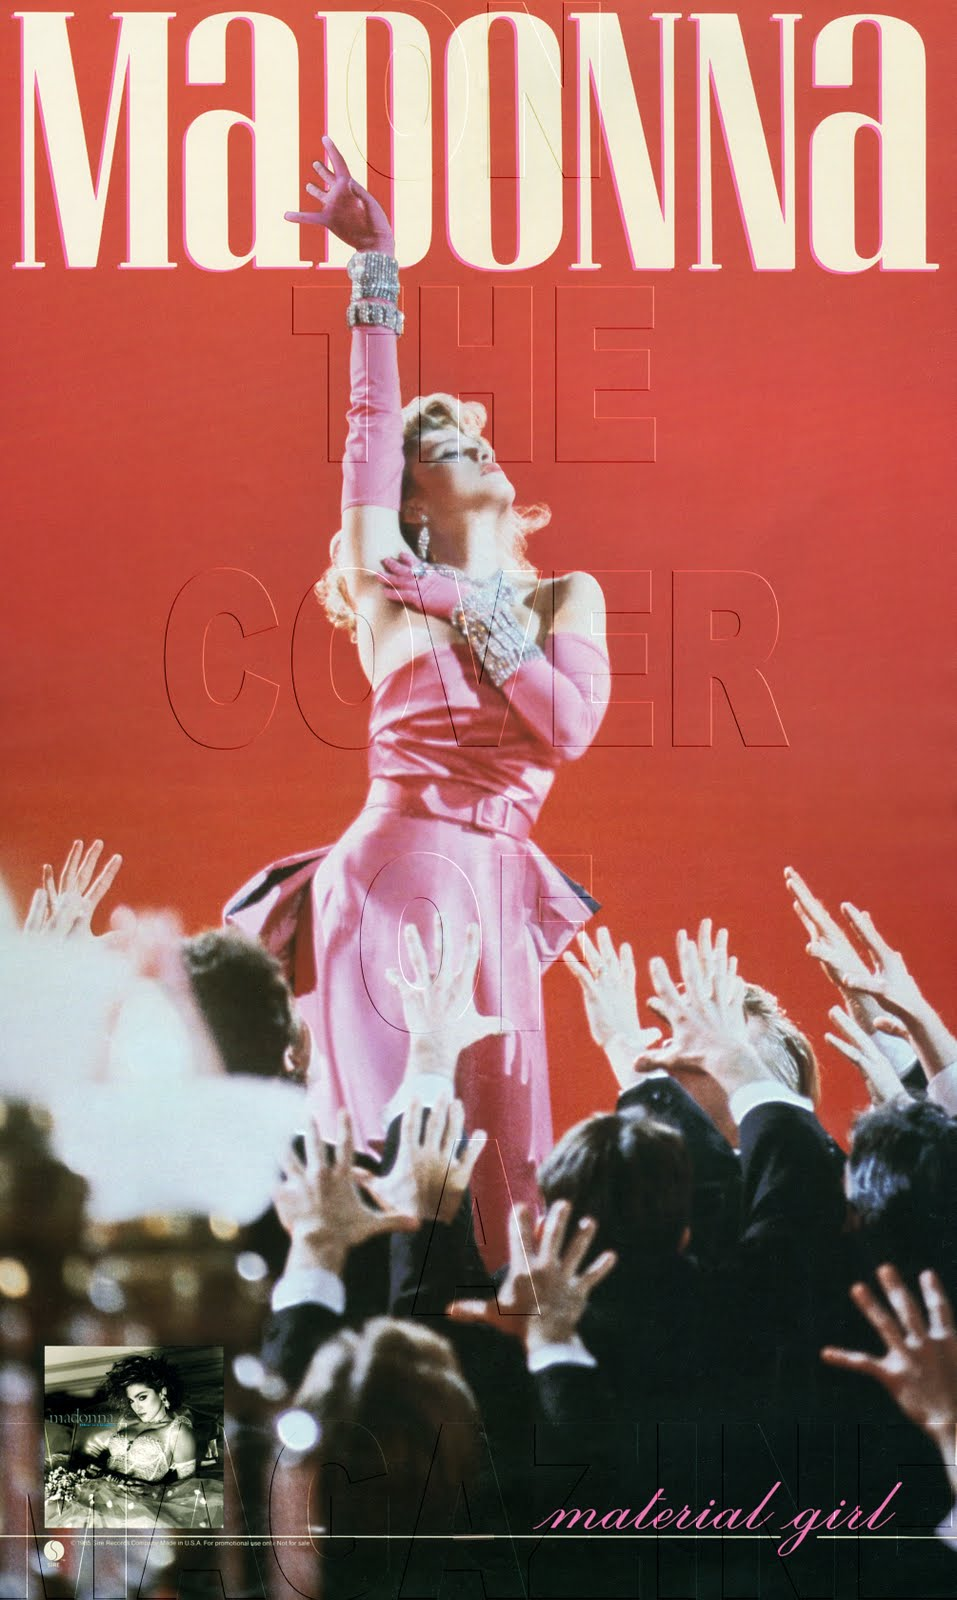 Book Cover Material Girl : Madonna on the cover of a magazine otcoam rare